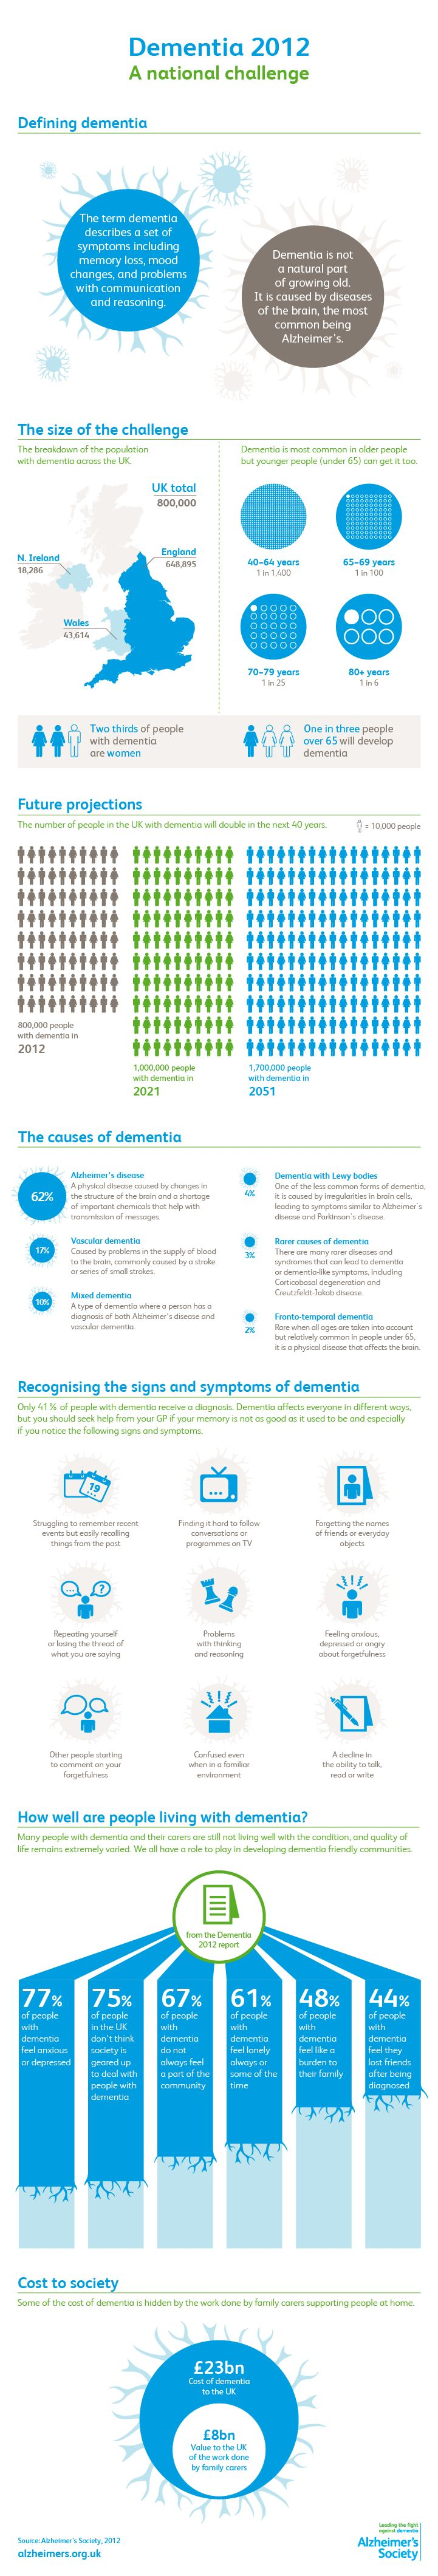 Infographic from Alzheimer's Society illustrating key dementia statistics and the size of the challenge facing society. CurcuminPro - the highest know curcumin bioavailability on the market today. 15000 times more bioavailable than standard curcumin. Discount code for 10% discount NOPAIN. Enter NOPAIN for discount on the highest known bioavailable curcumin.